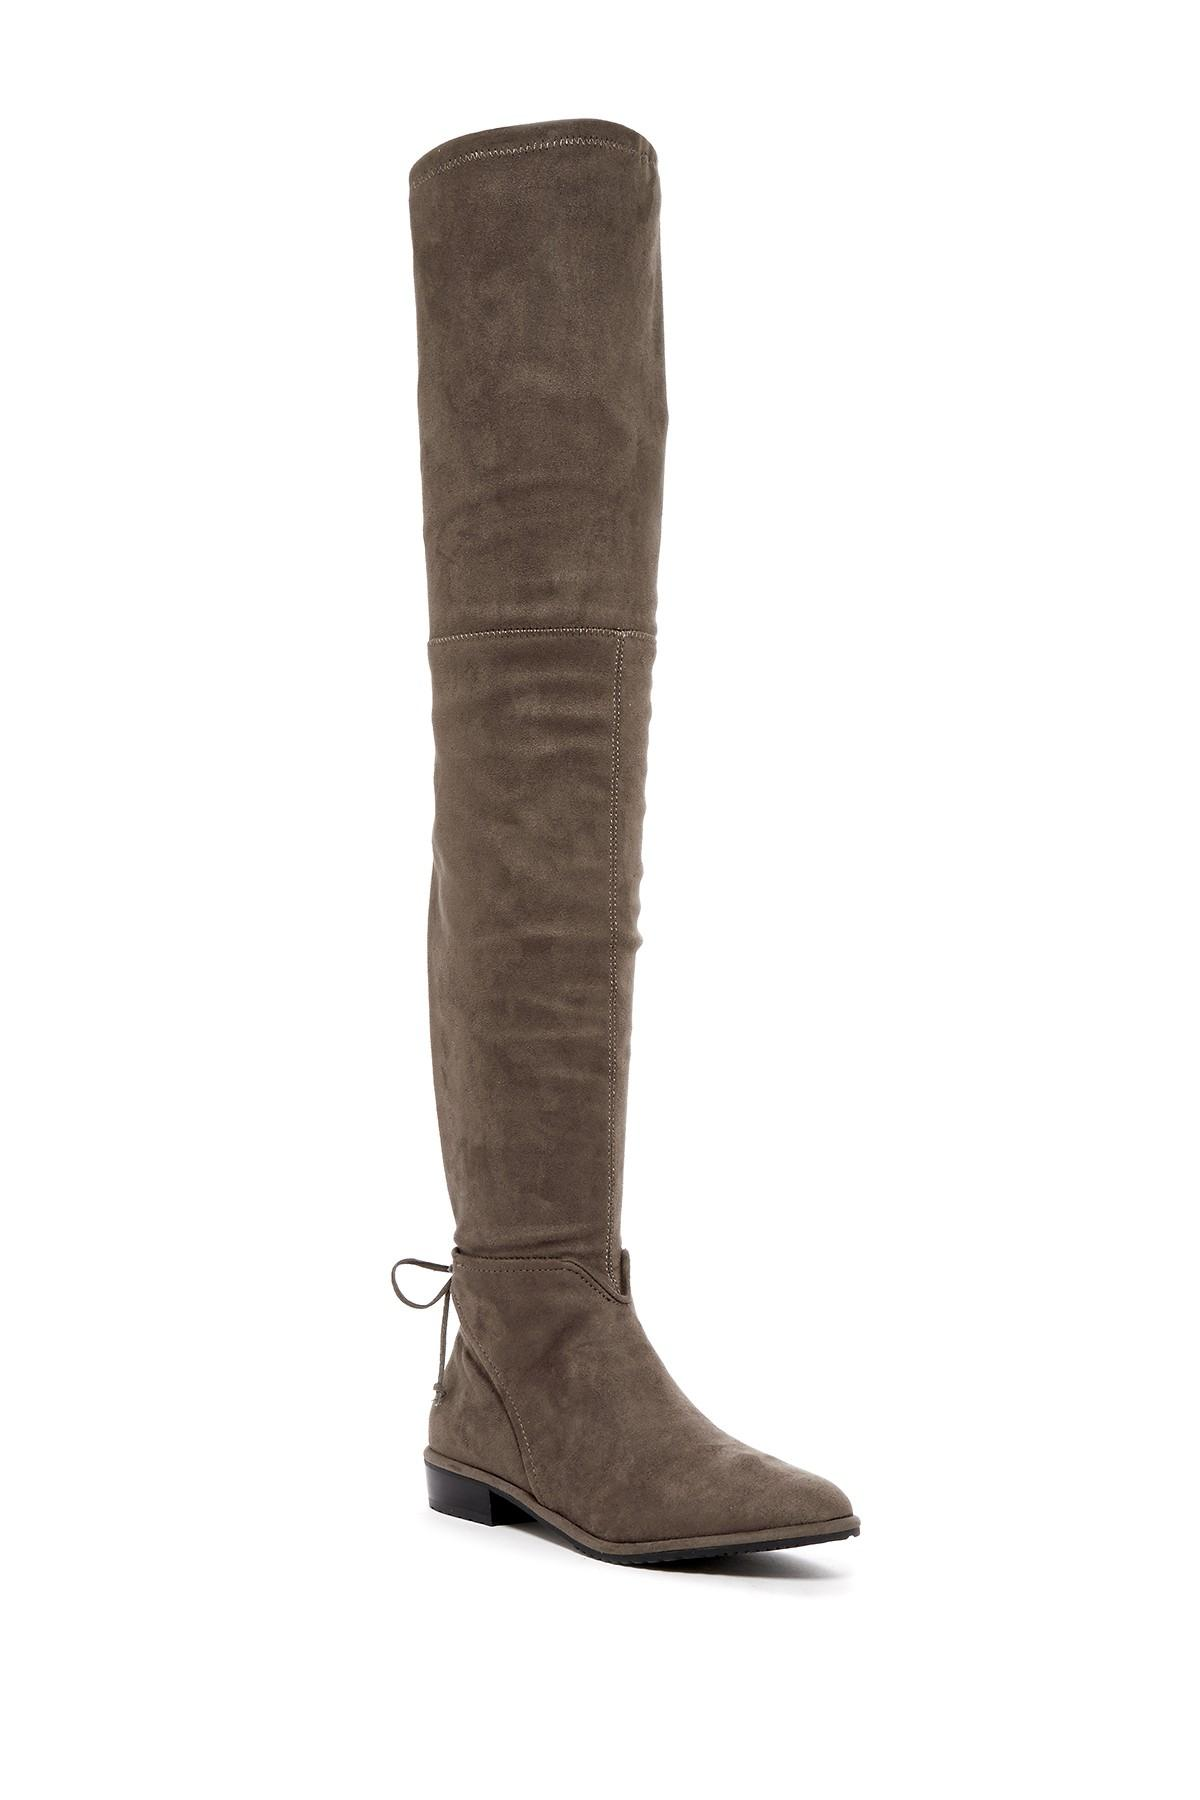 vince camuto caddea thigh high boot in brown lyst